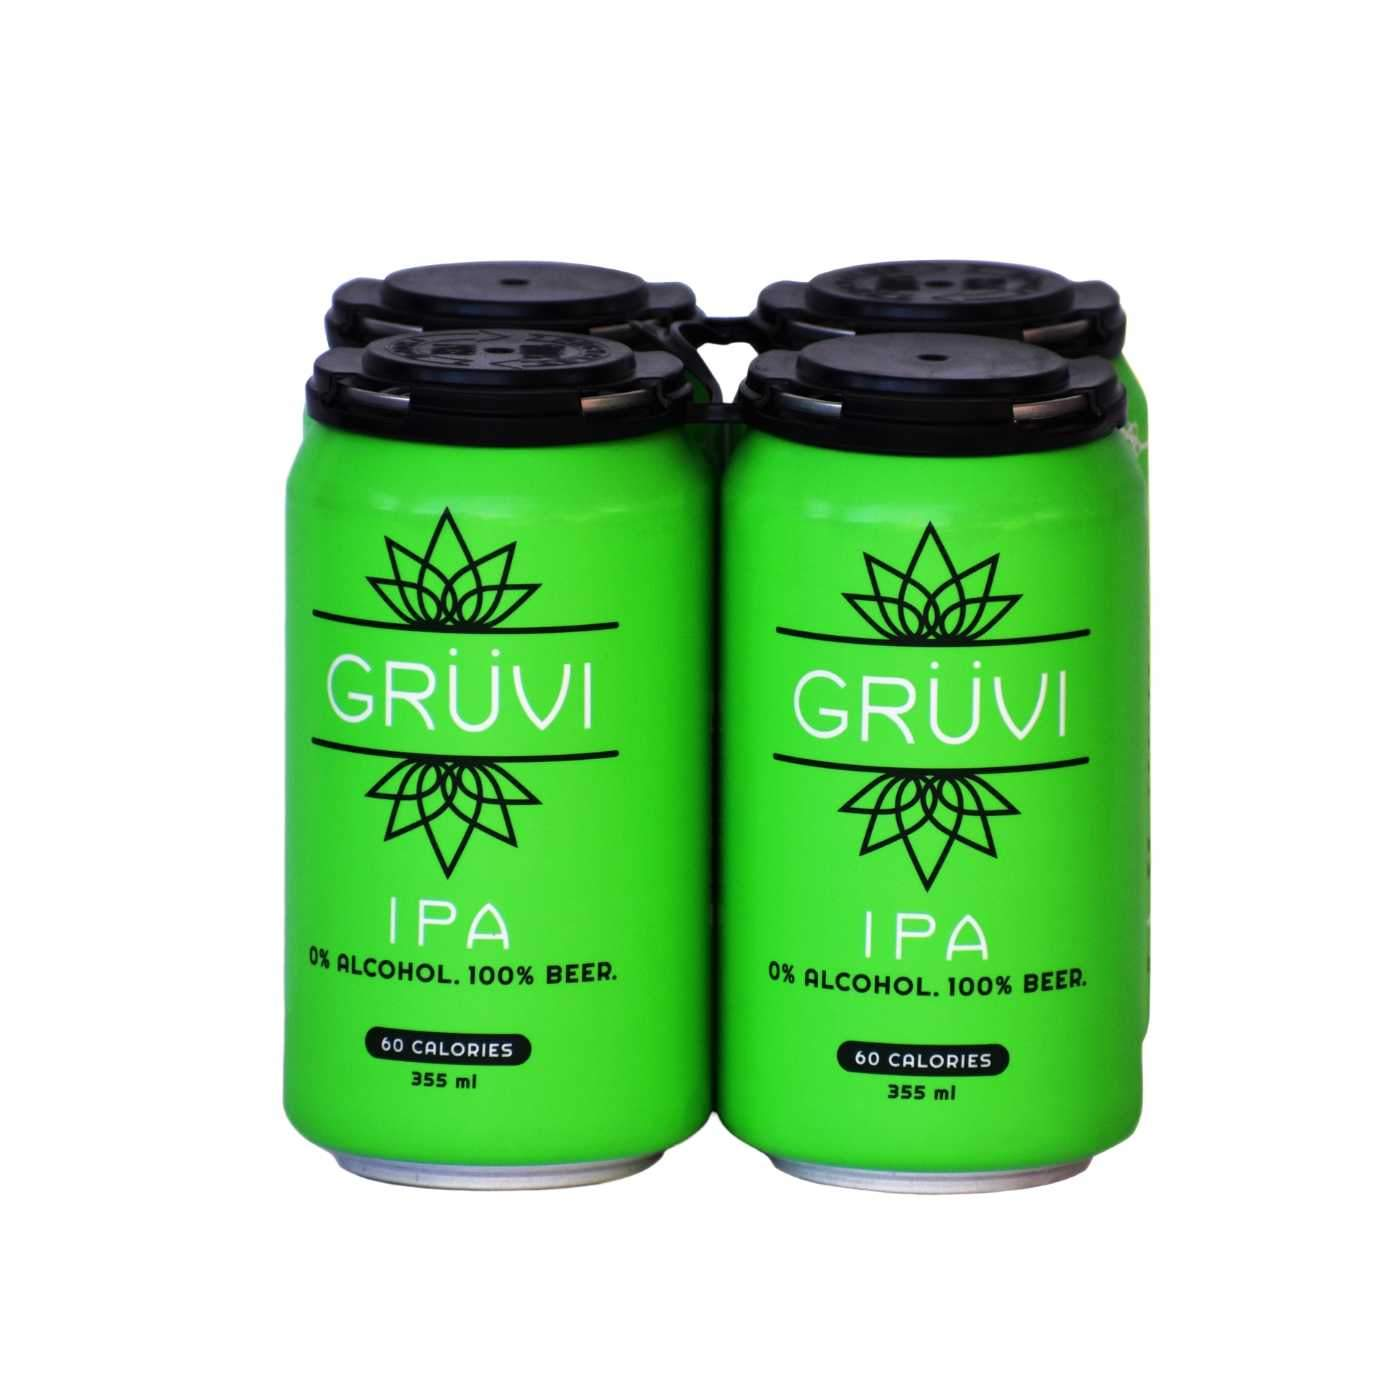 Gruvi Non-Alcoholic IPA (4 pack)